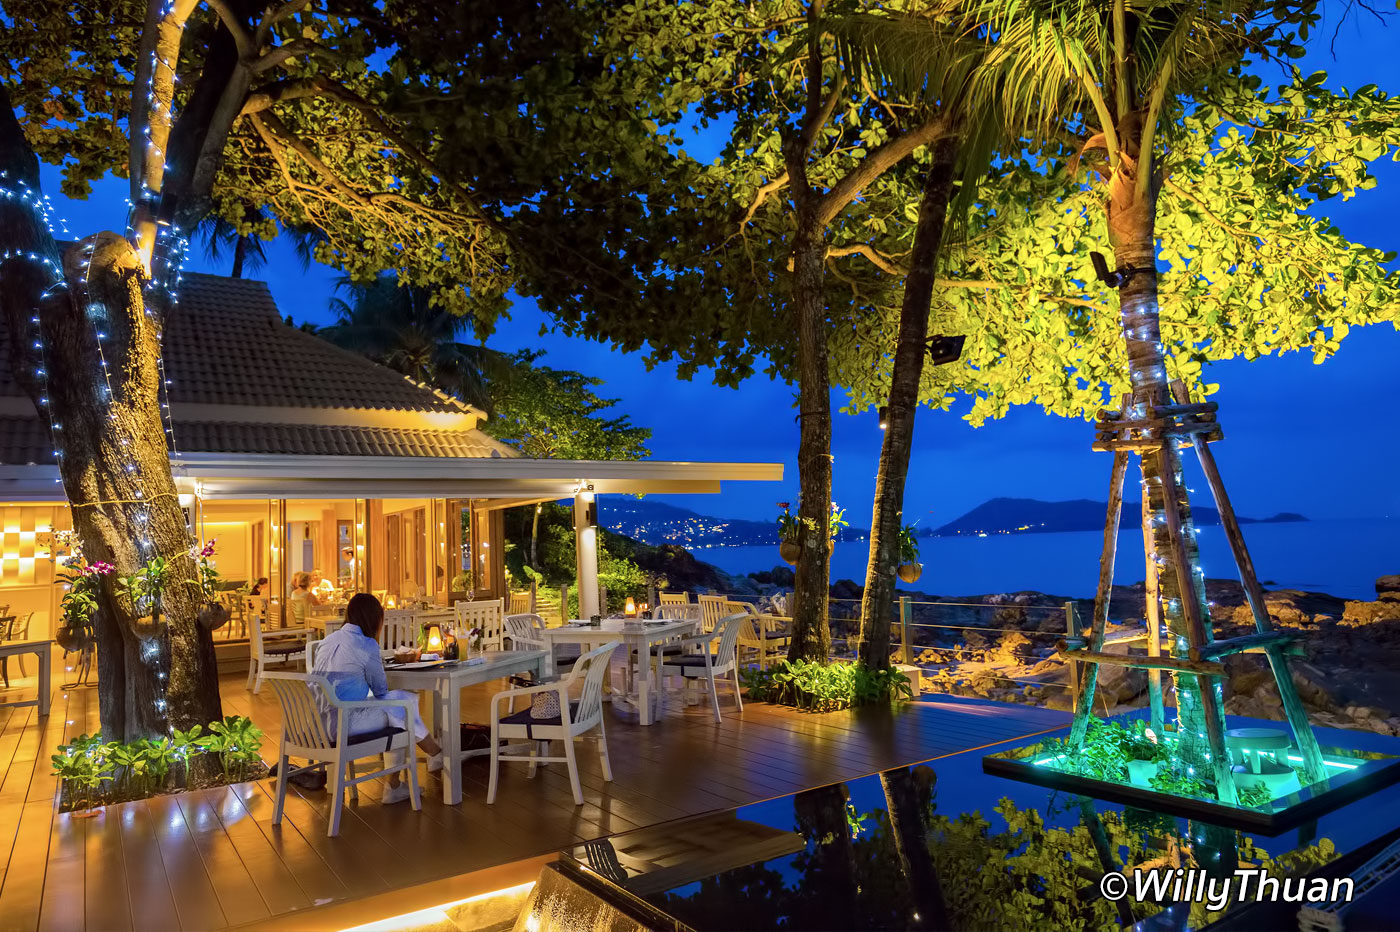 SeaSalt Lounge and Grill Patong Beach